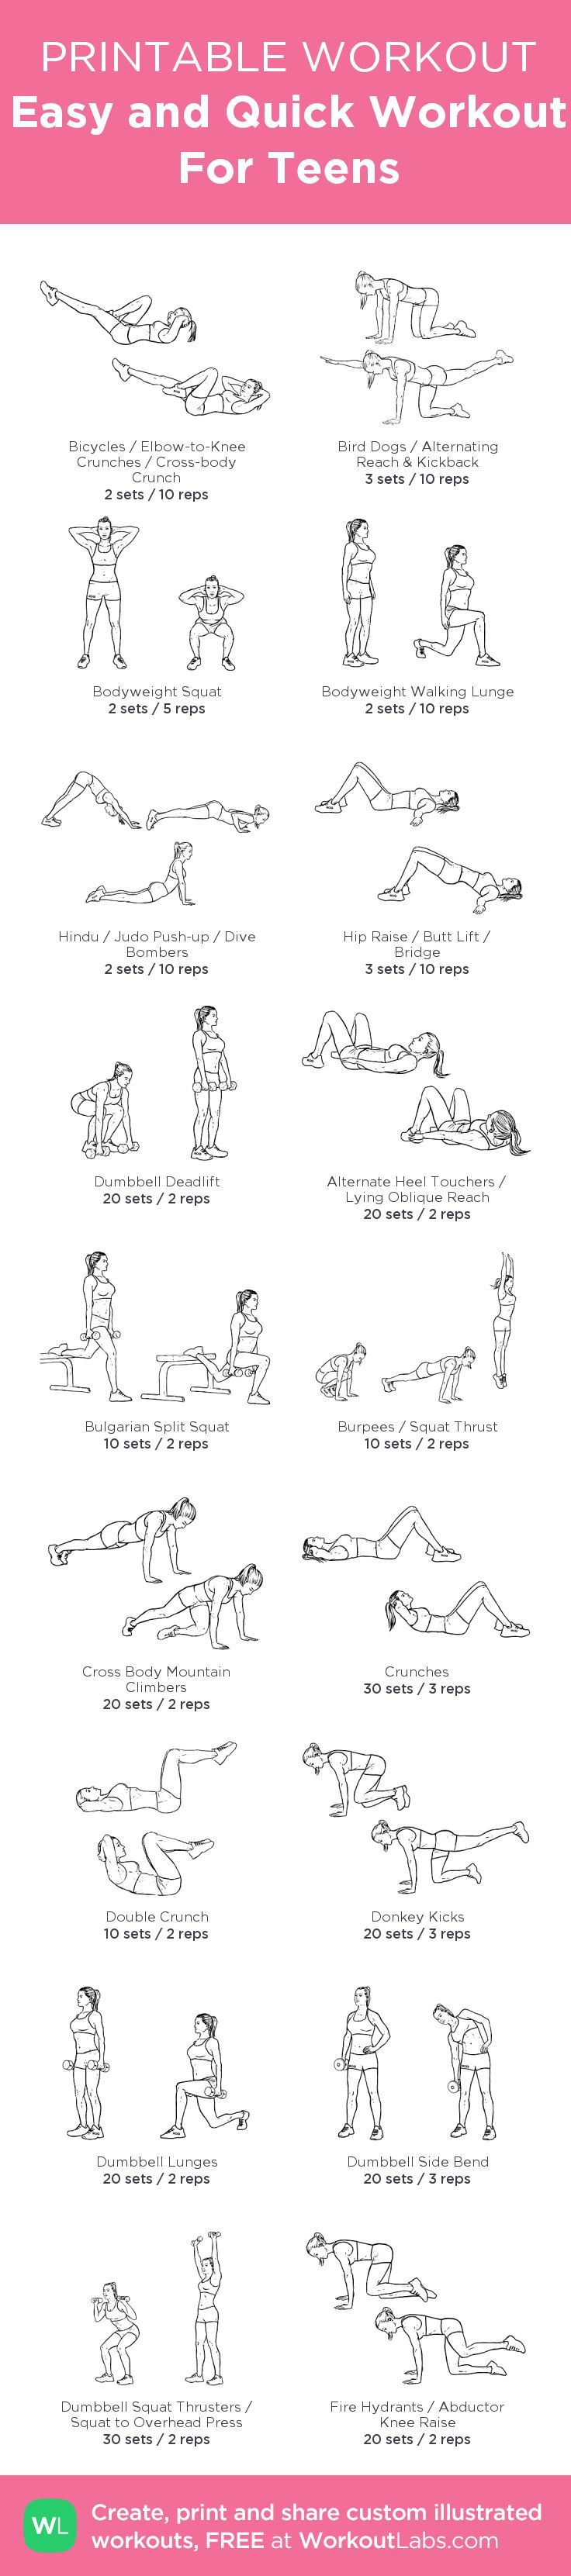 Easy and Quick Workout For Teens – my custom workout created at WorkoutLabs.com • Click through to download as printable PDF! #customworkout